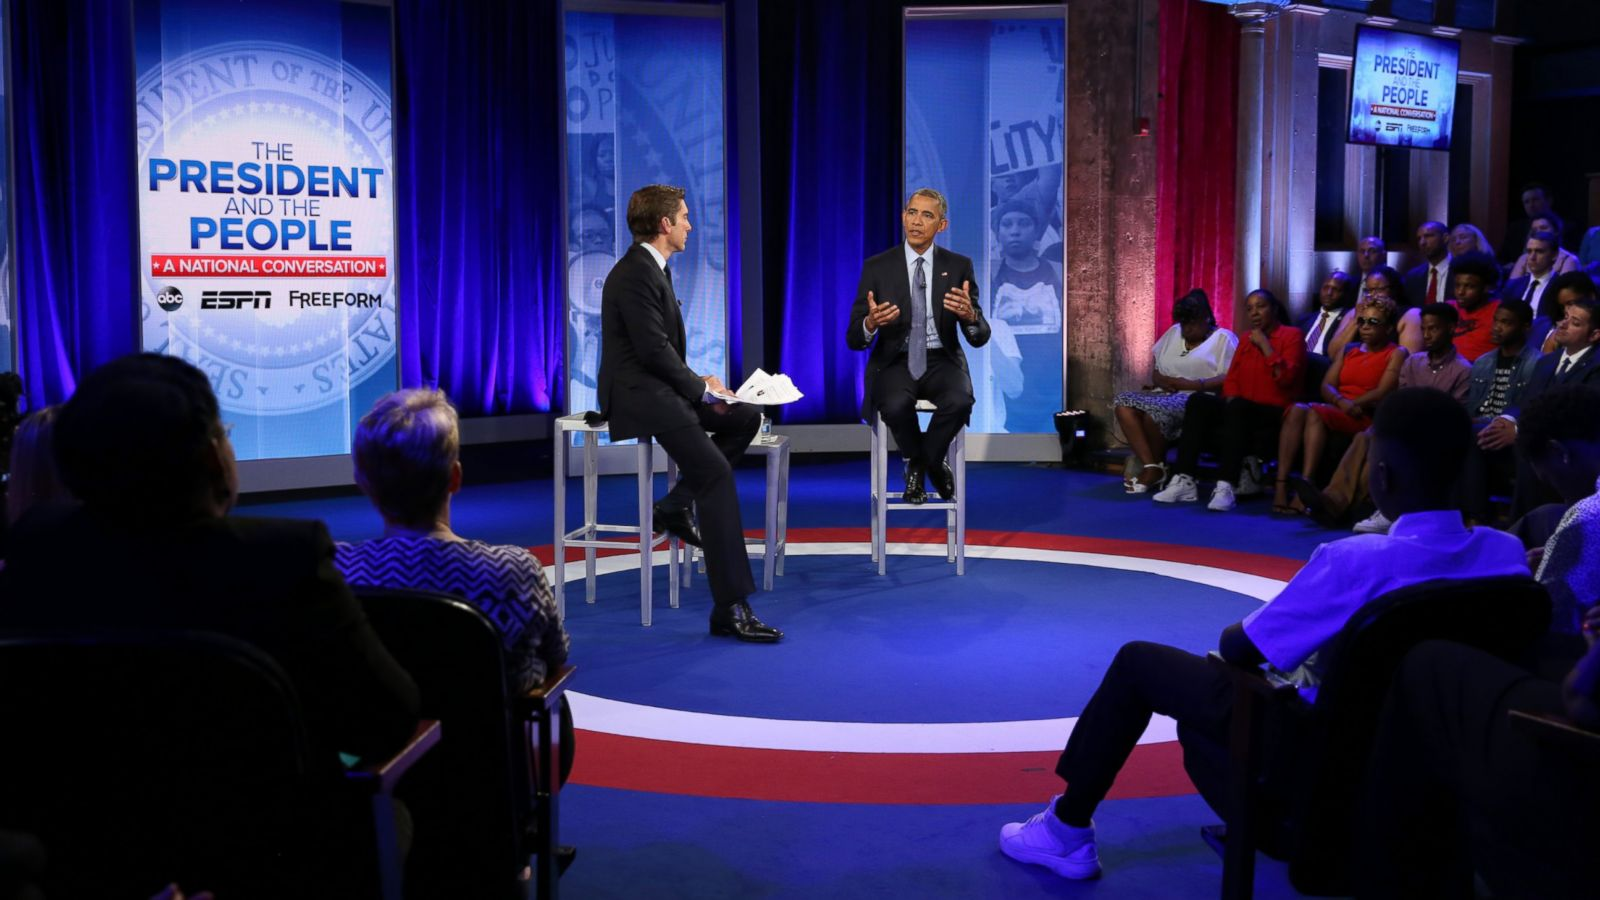 'It's Not Us Versus Them,' Obama Says in Town Hall